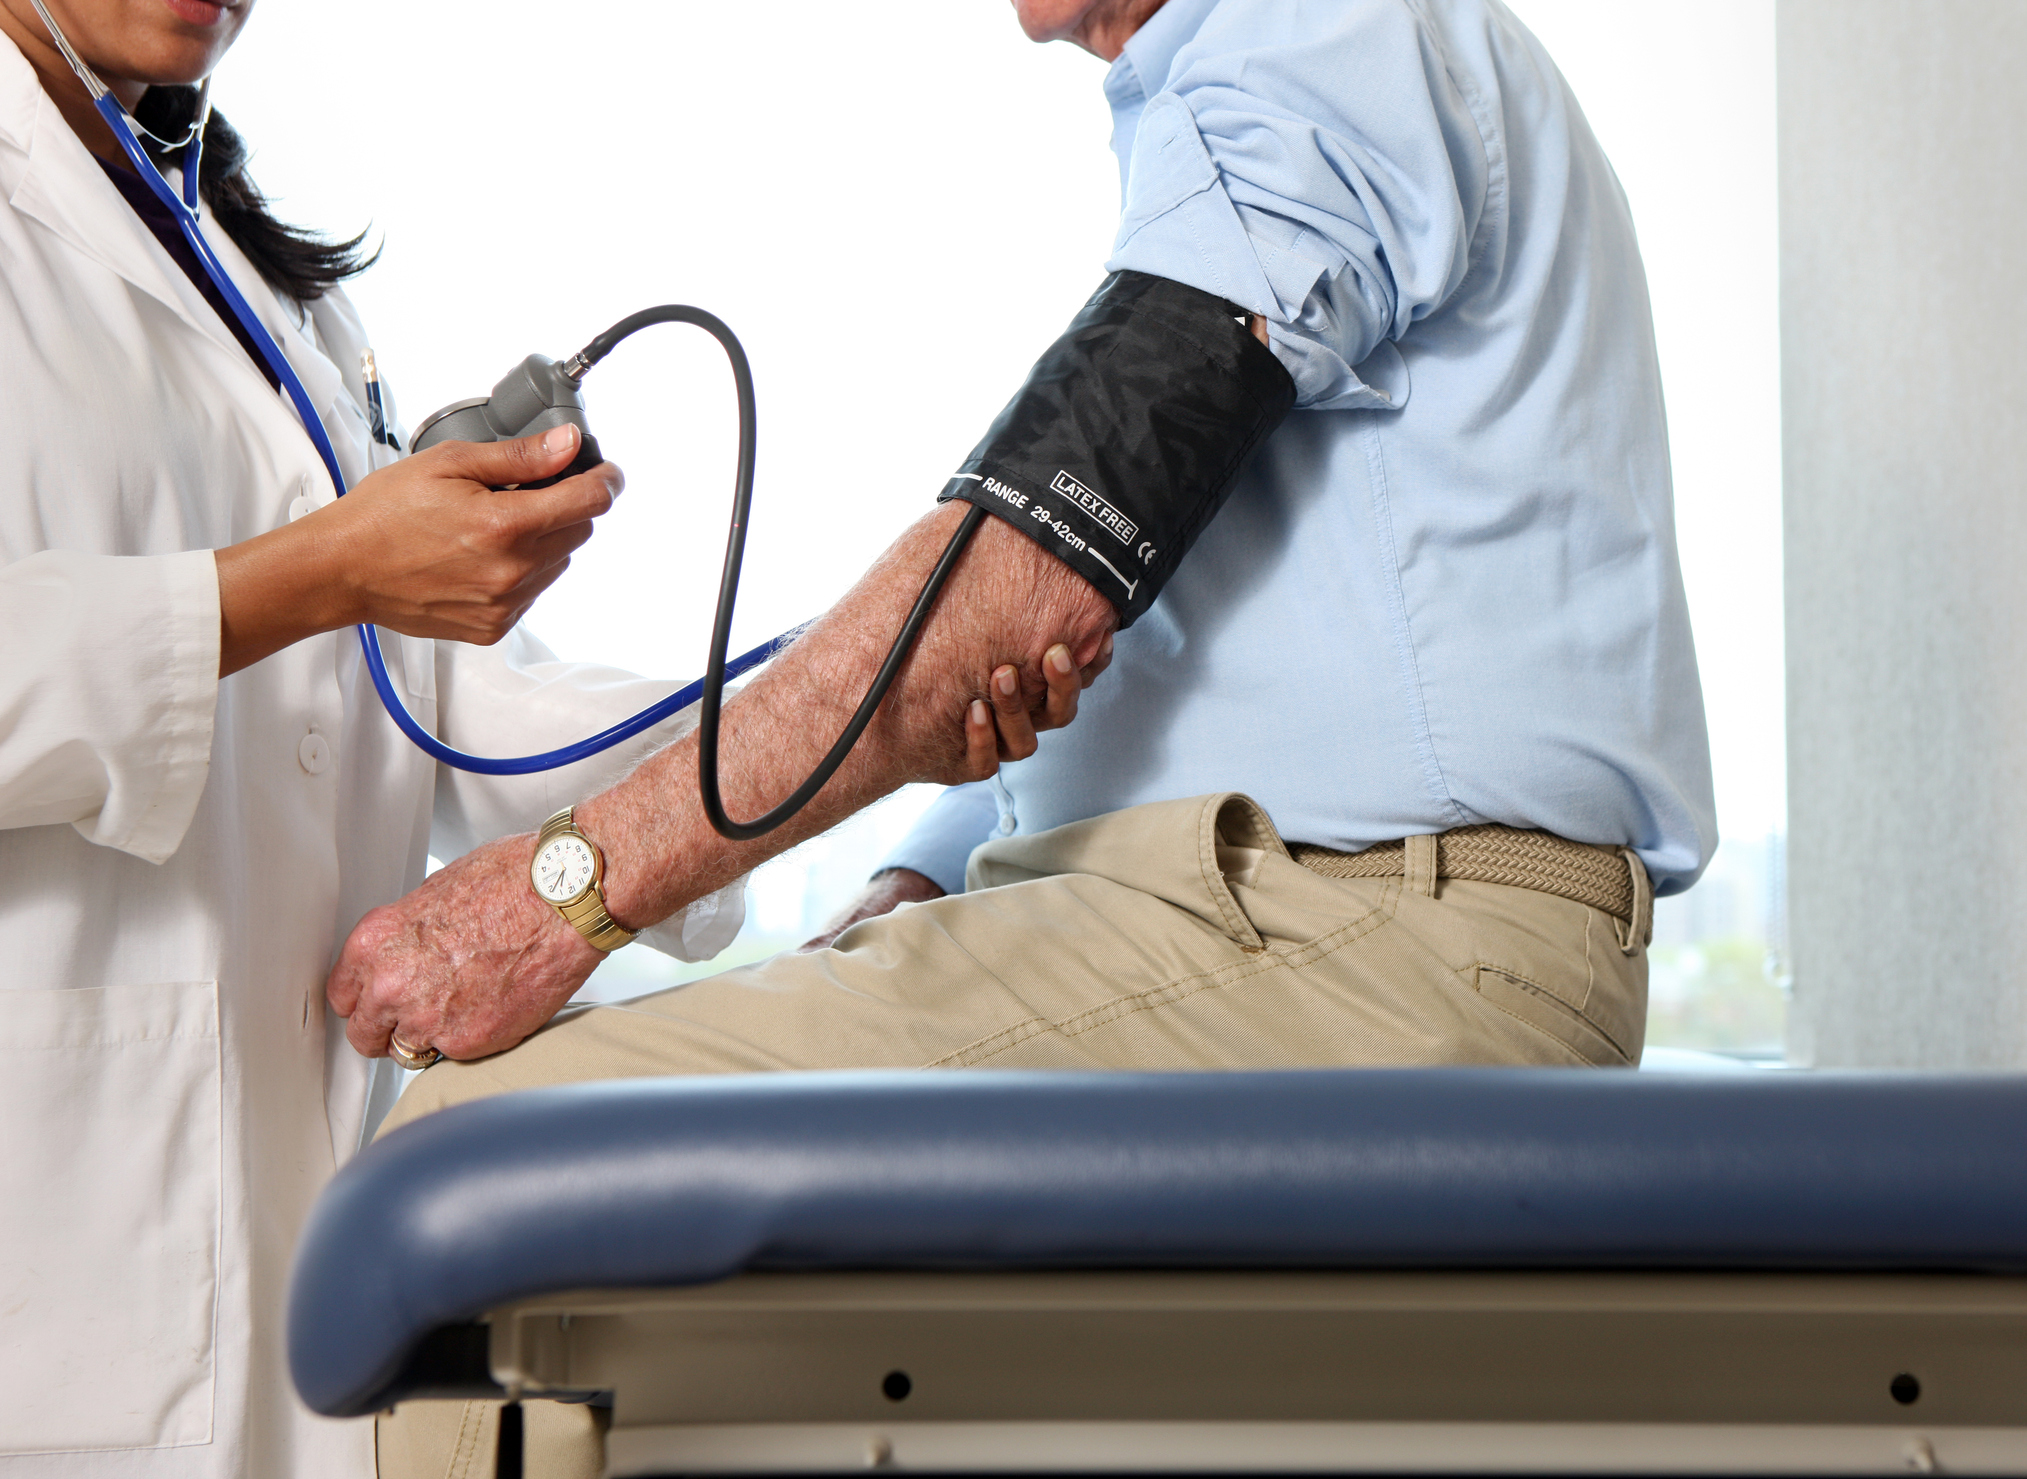 Doctors botch blood pressure readings more often than you think